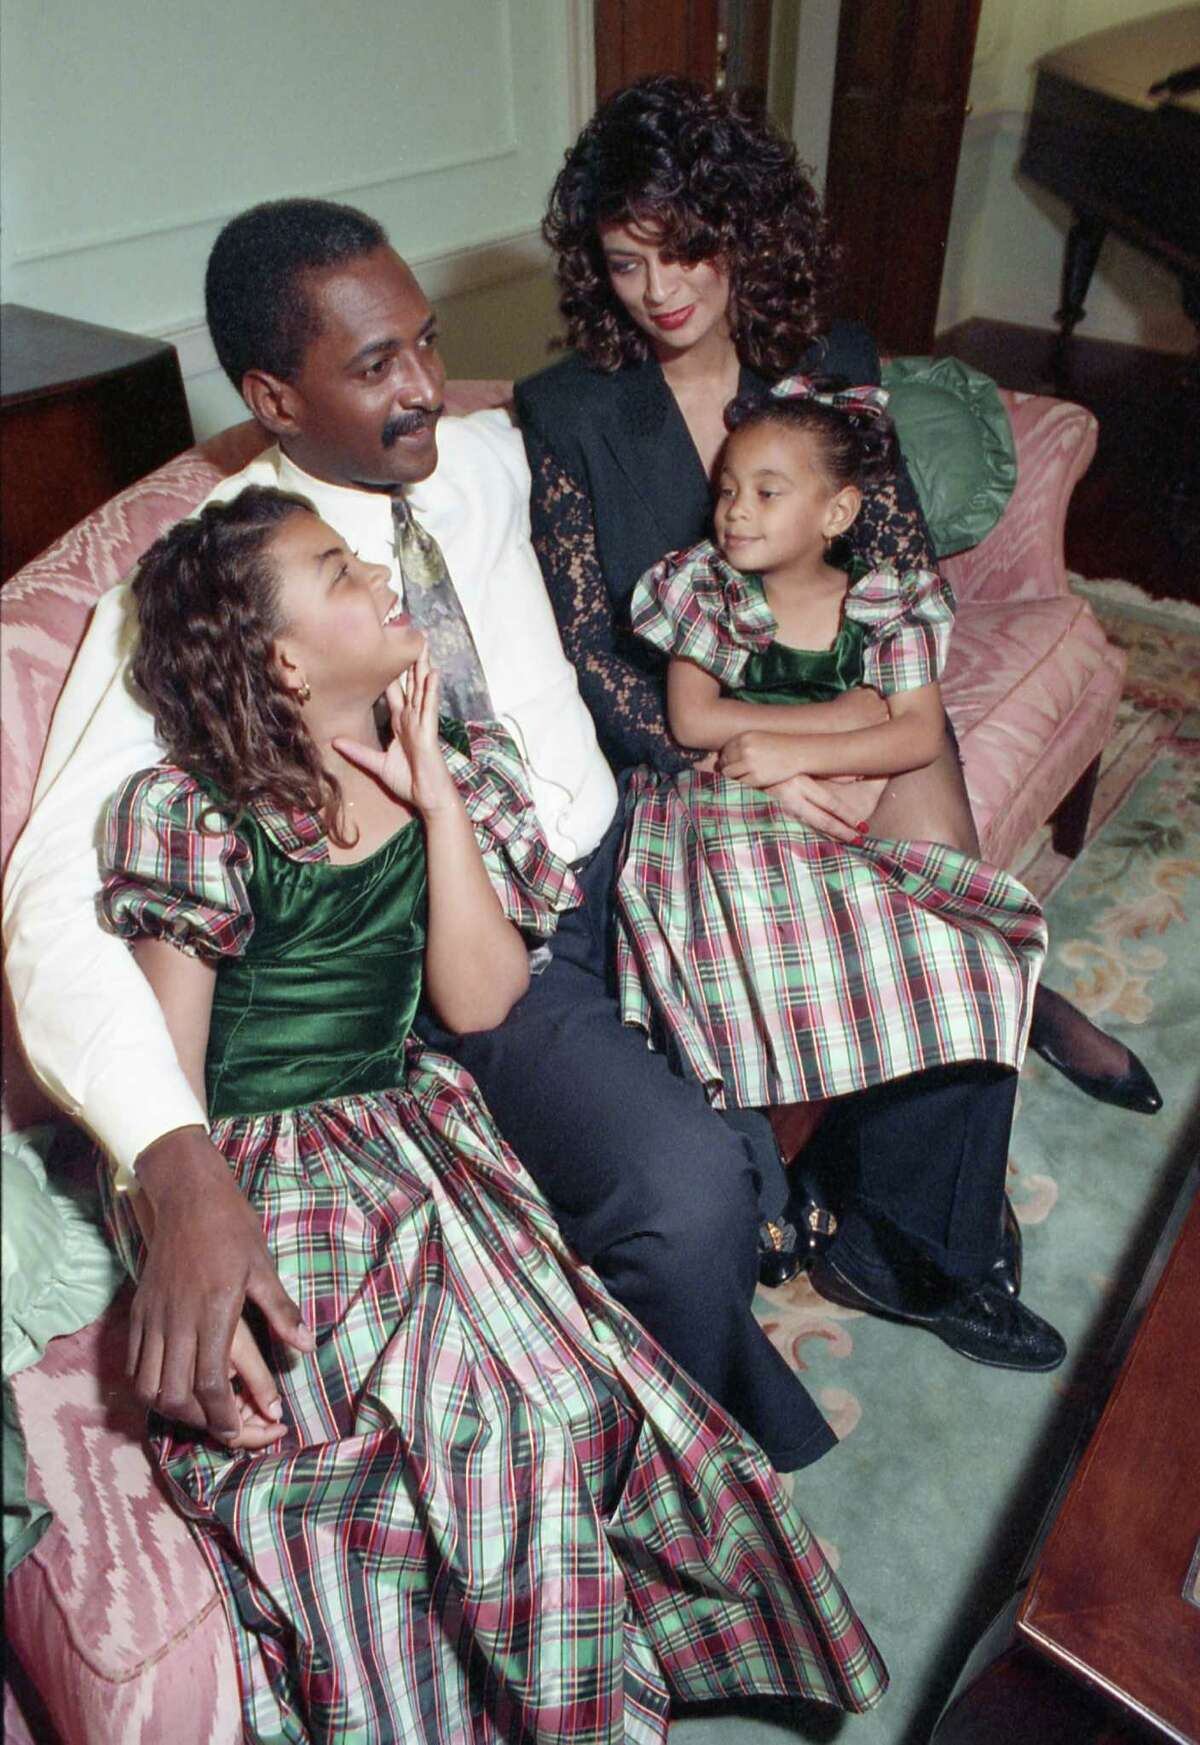 Tina & Mathew Knowles, with their two daughters, Beyonce and Solange, 1990.